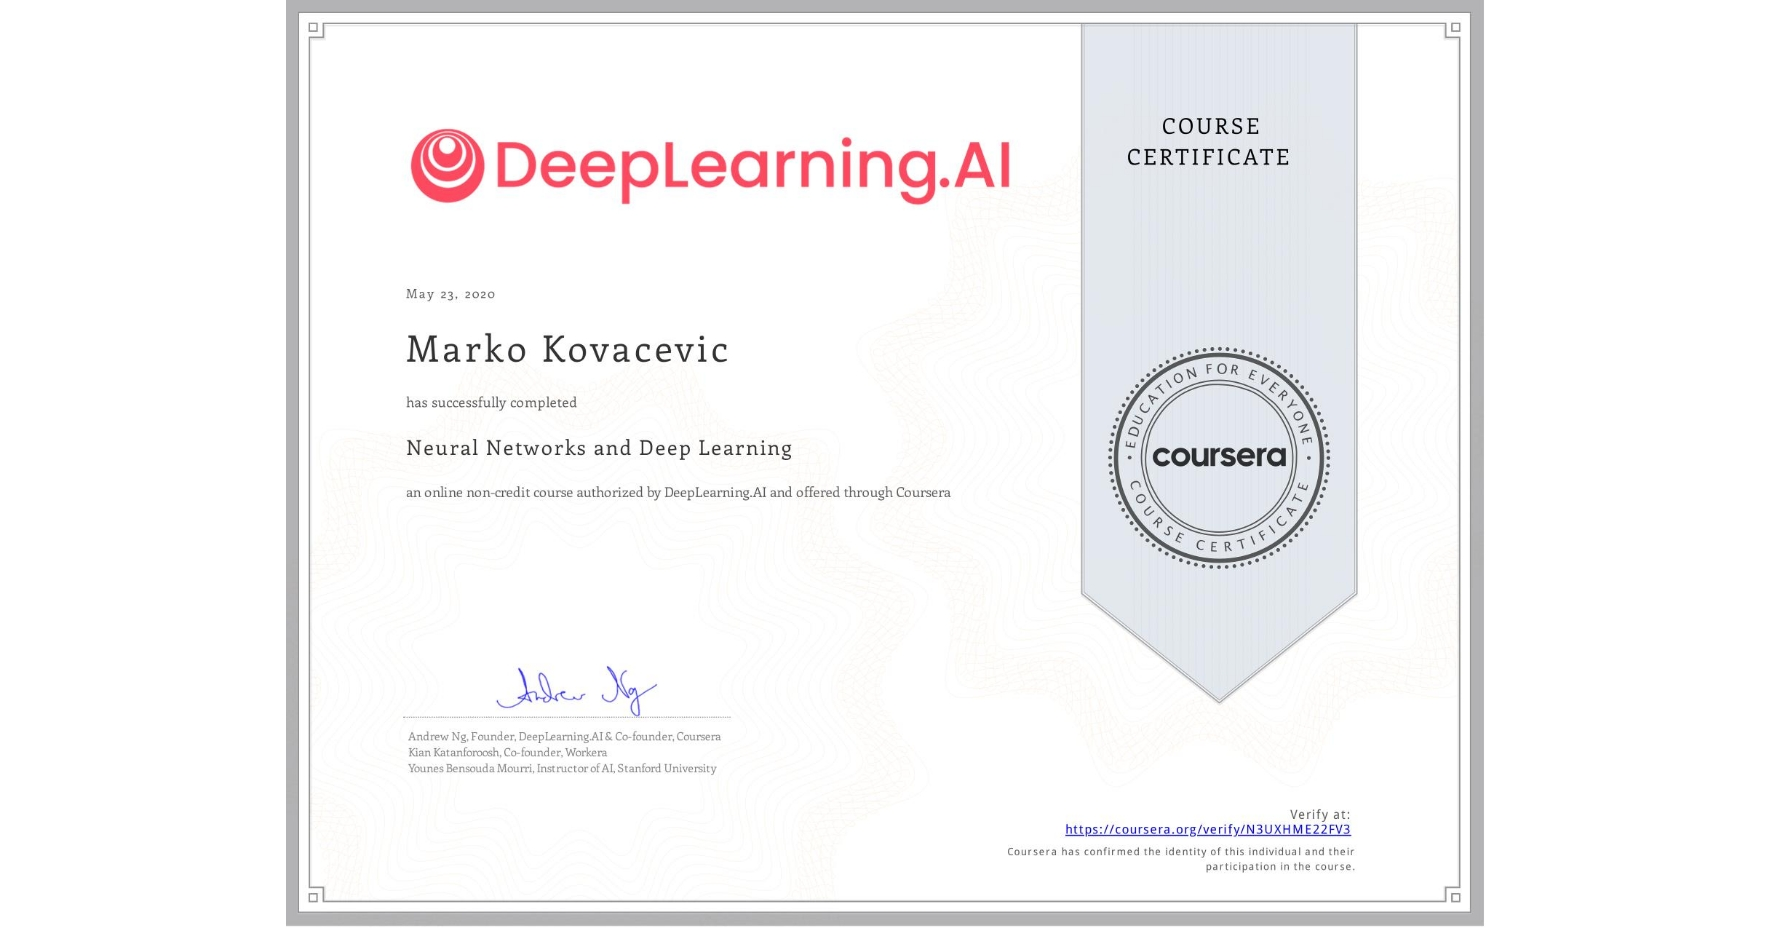 View certificate for Marko Kovacevic, Neural Networks and Deep Learning, an online non-credit course authorized by DeepLearning.AI and offered through Coursera